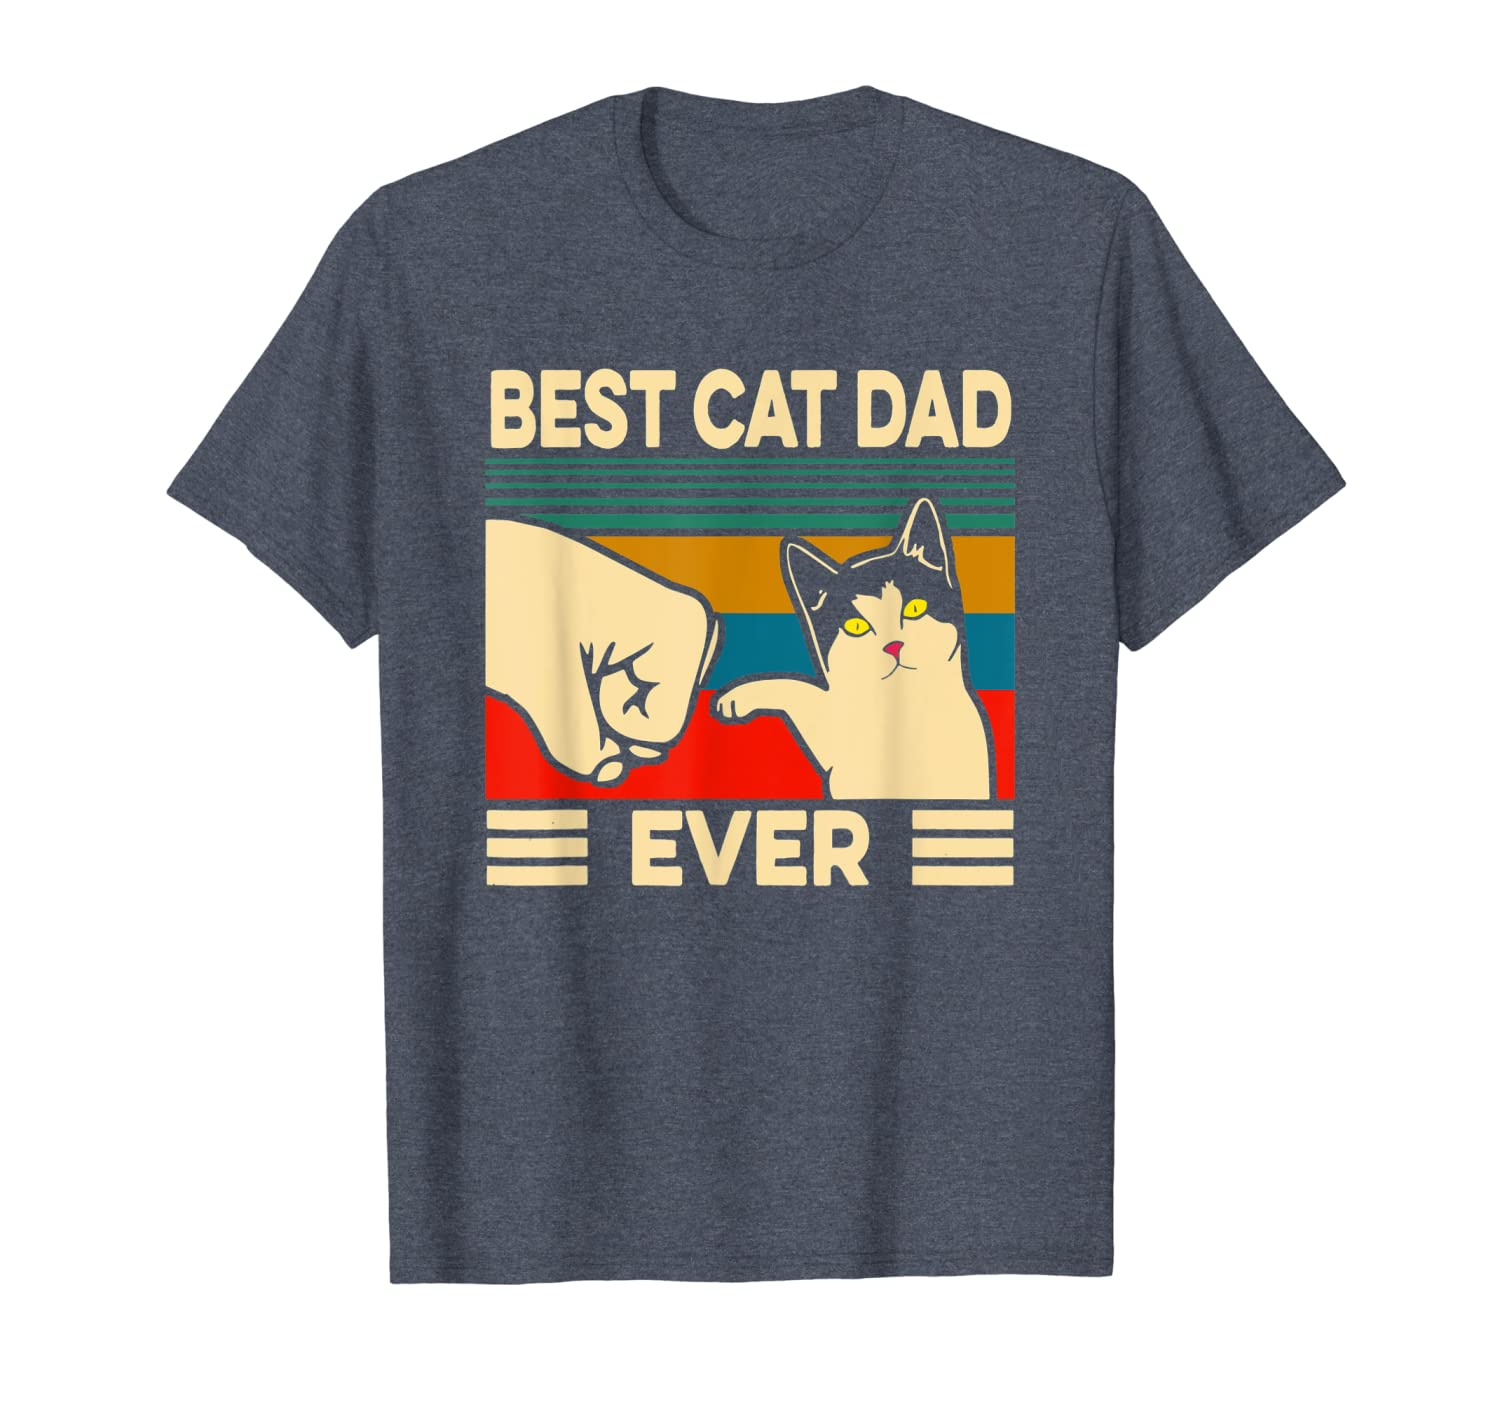 Best Cat Dad Ever Vintage Men Bump Fit Fathers Day Gift T-Shirt Unisex Tshirt